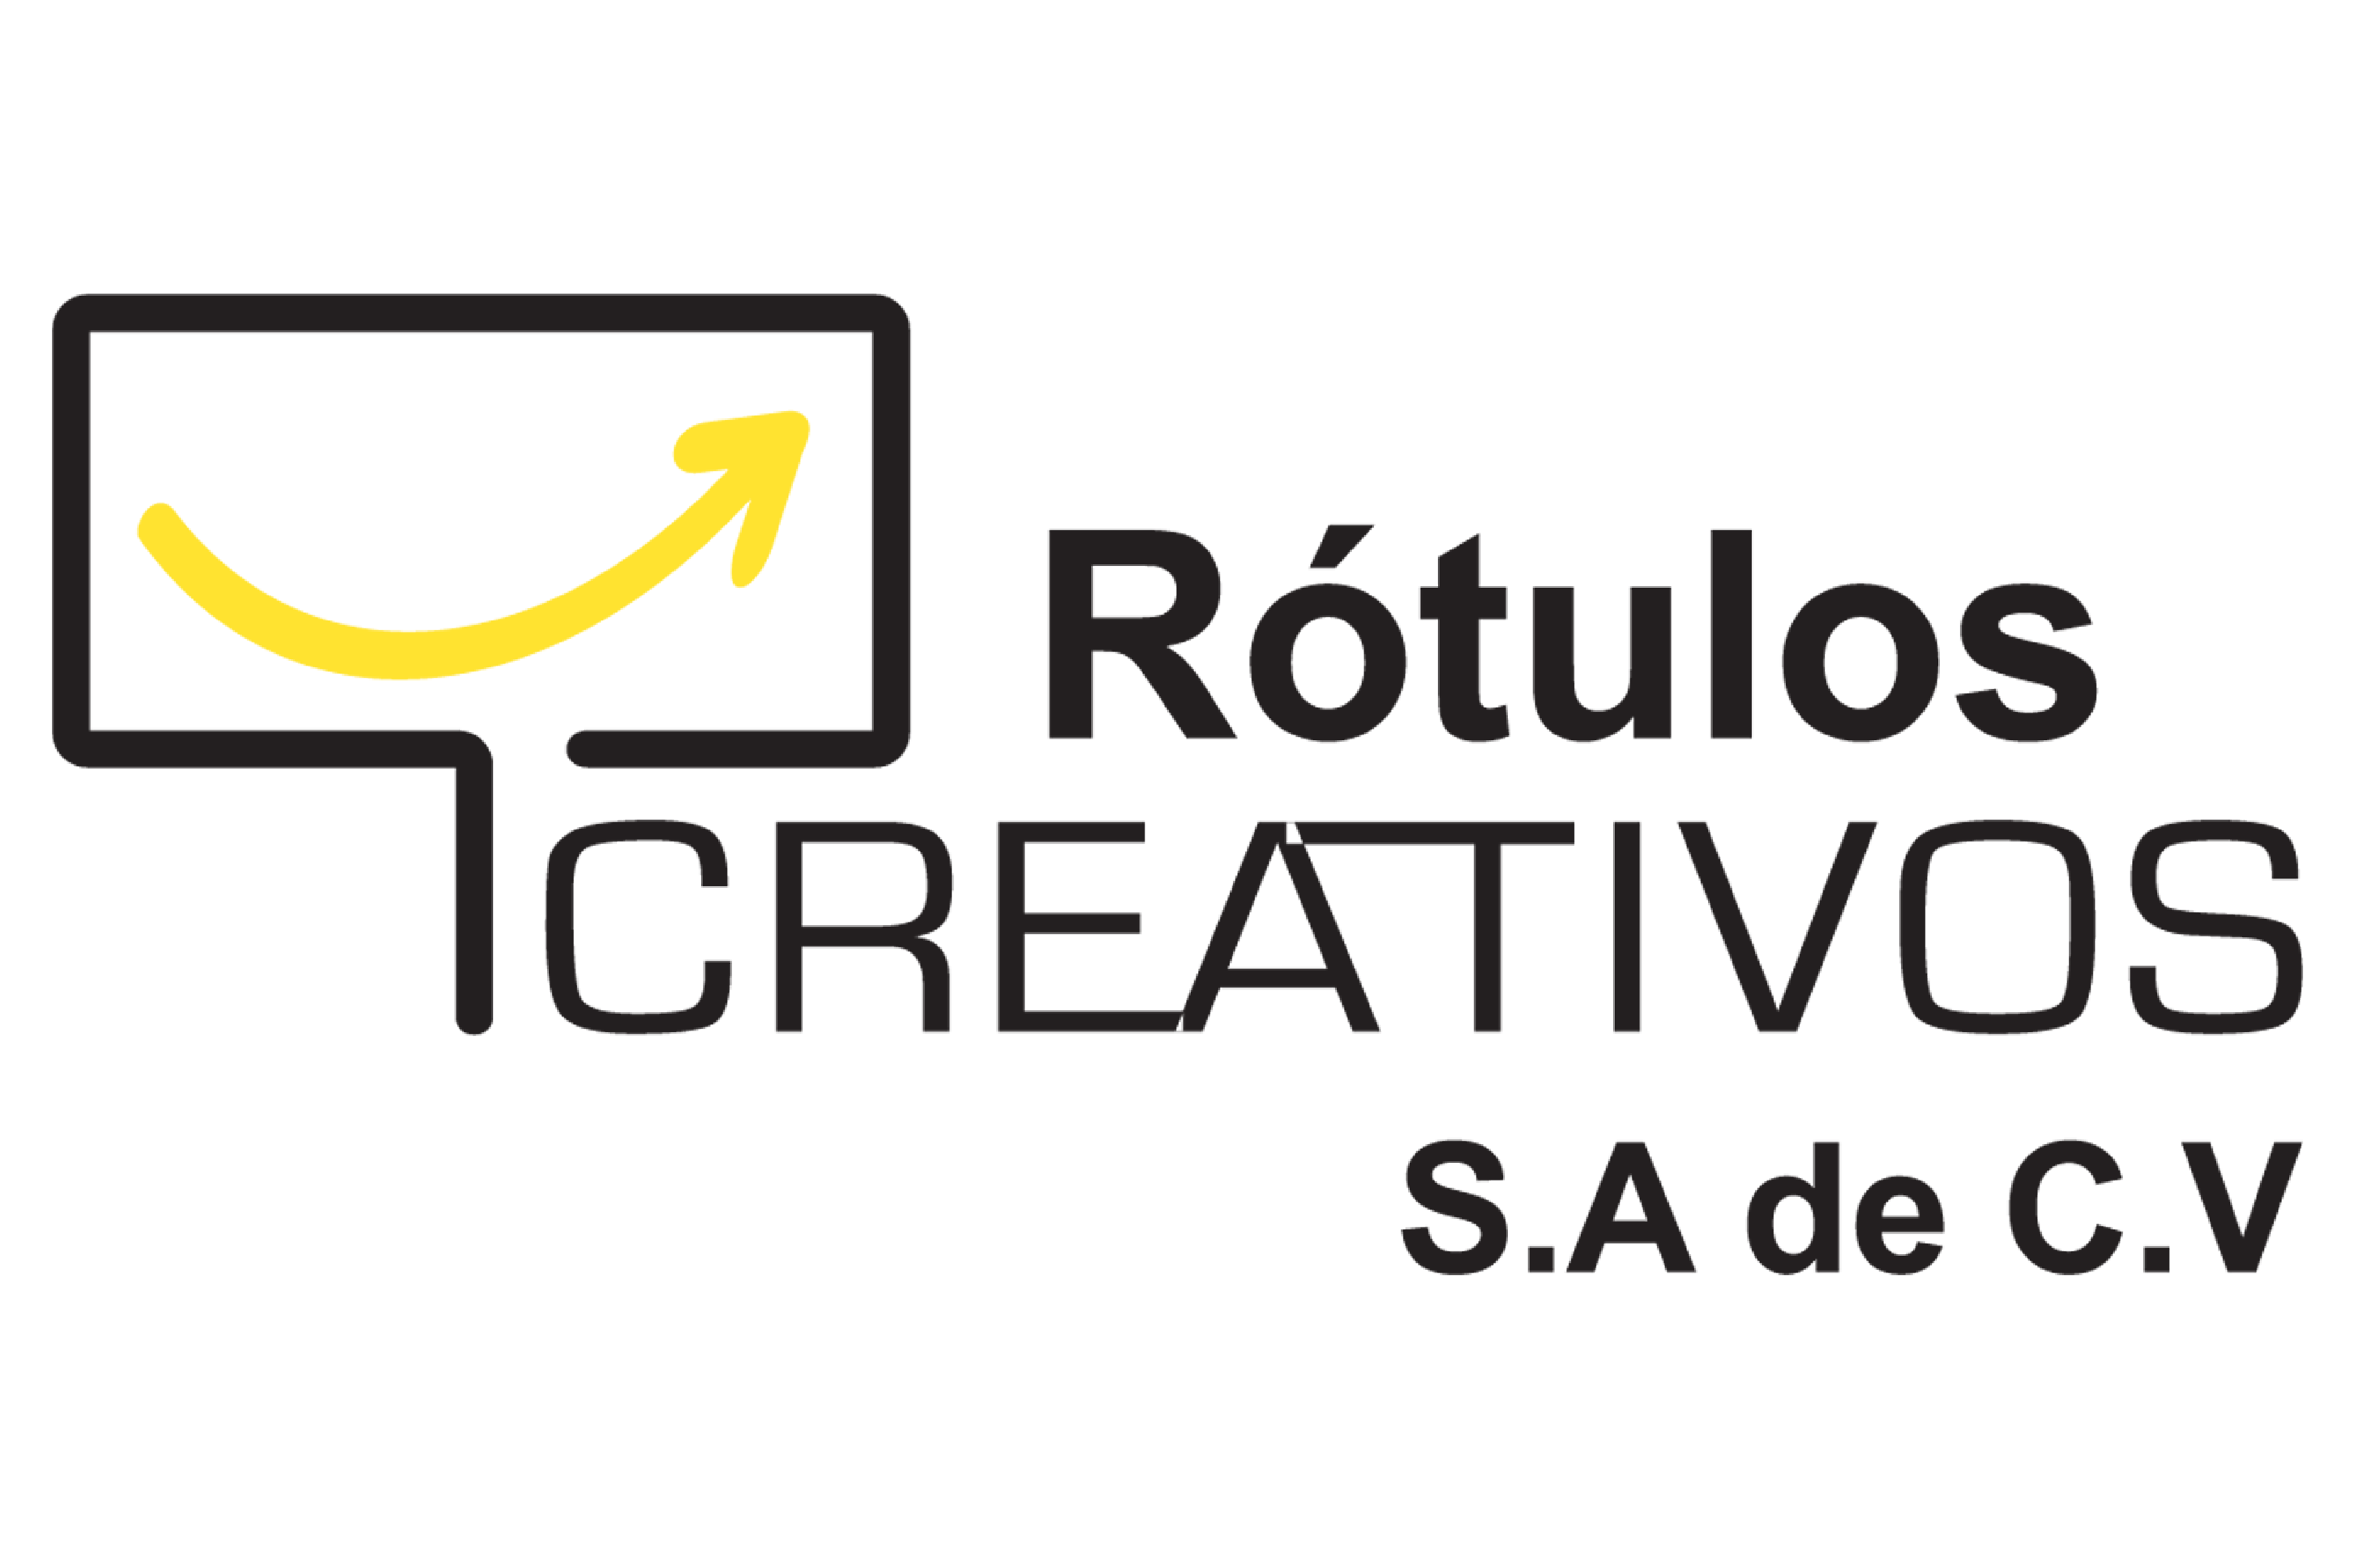 Rotulos Creativos